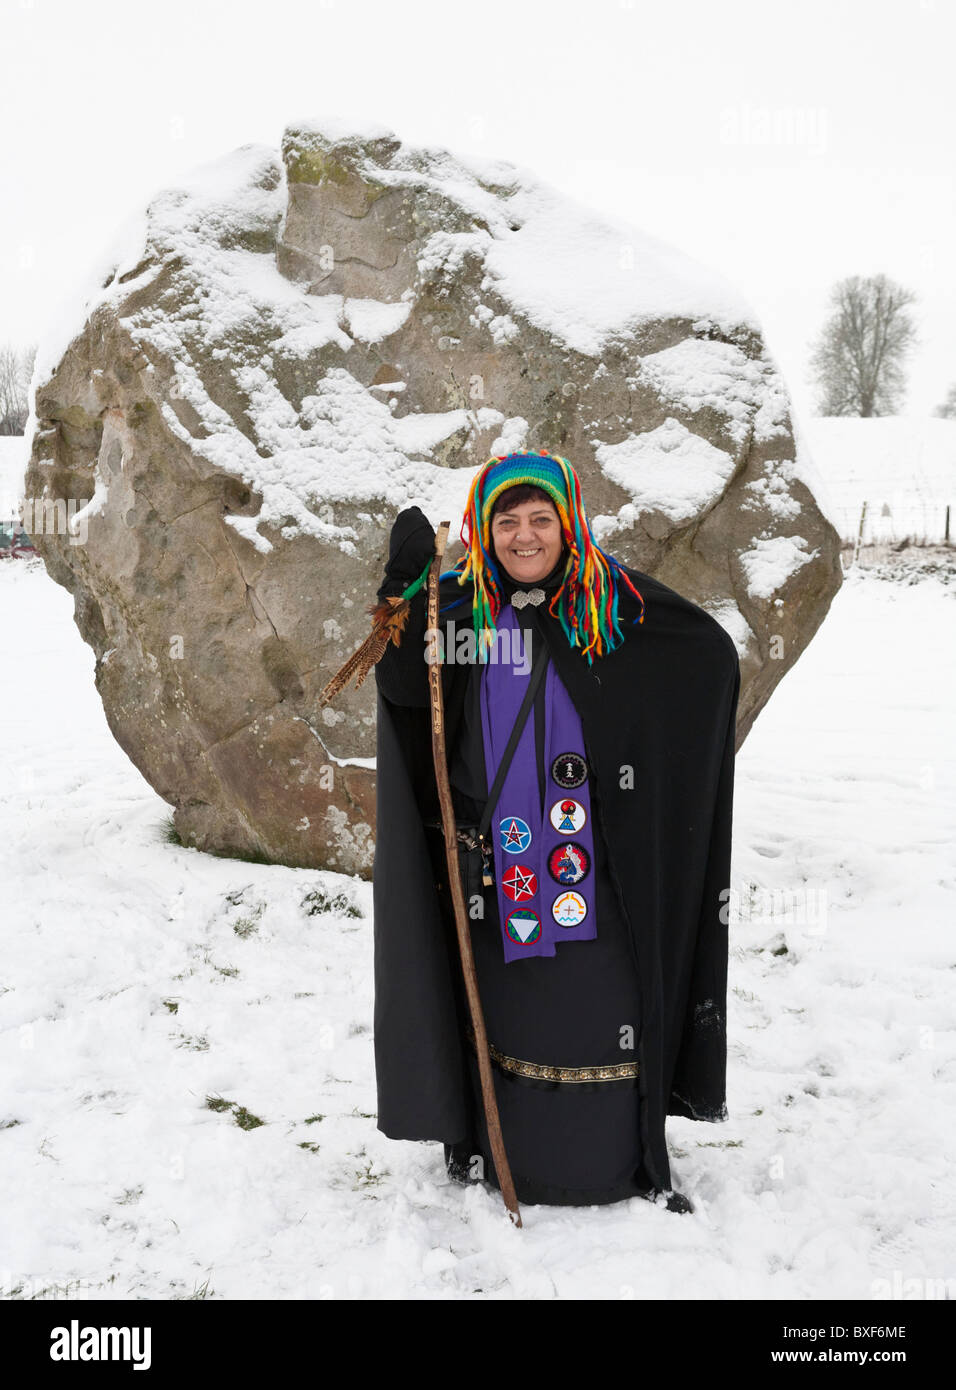 A druid celebrating the Winter Solstice in the snow at Avebury stone circle, Wiltshire, UK - Stock Image